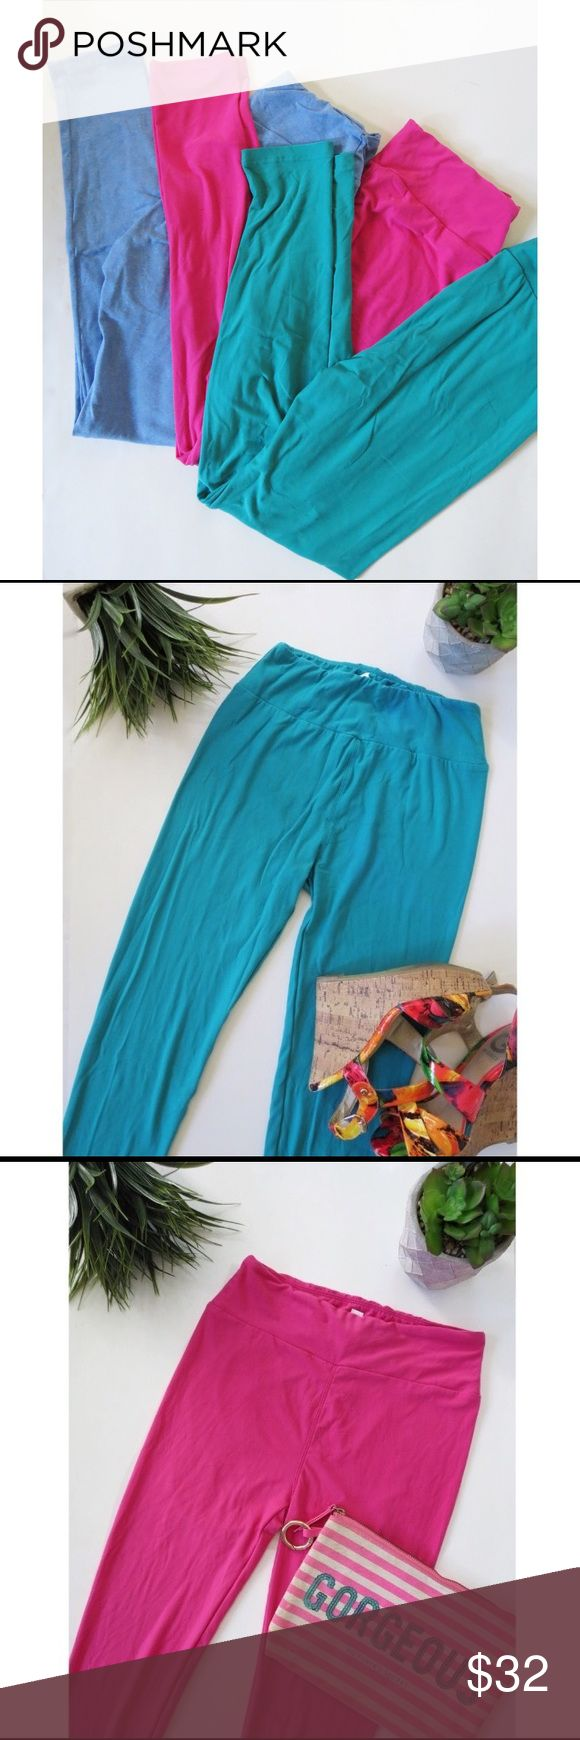 ✨ ONE DAY ONLY! ✨Lula Roe bundle deal ONE DAY SALE! Lula Roe bundle deal. This awesome deal includes three pairs of one size leggings from lula roe. Gorgeous teal color, fuchsia color and ocean blue color. Great basic leggings to match with all your fall faves! All in great condition. LuLaRoe Pants Leggings